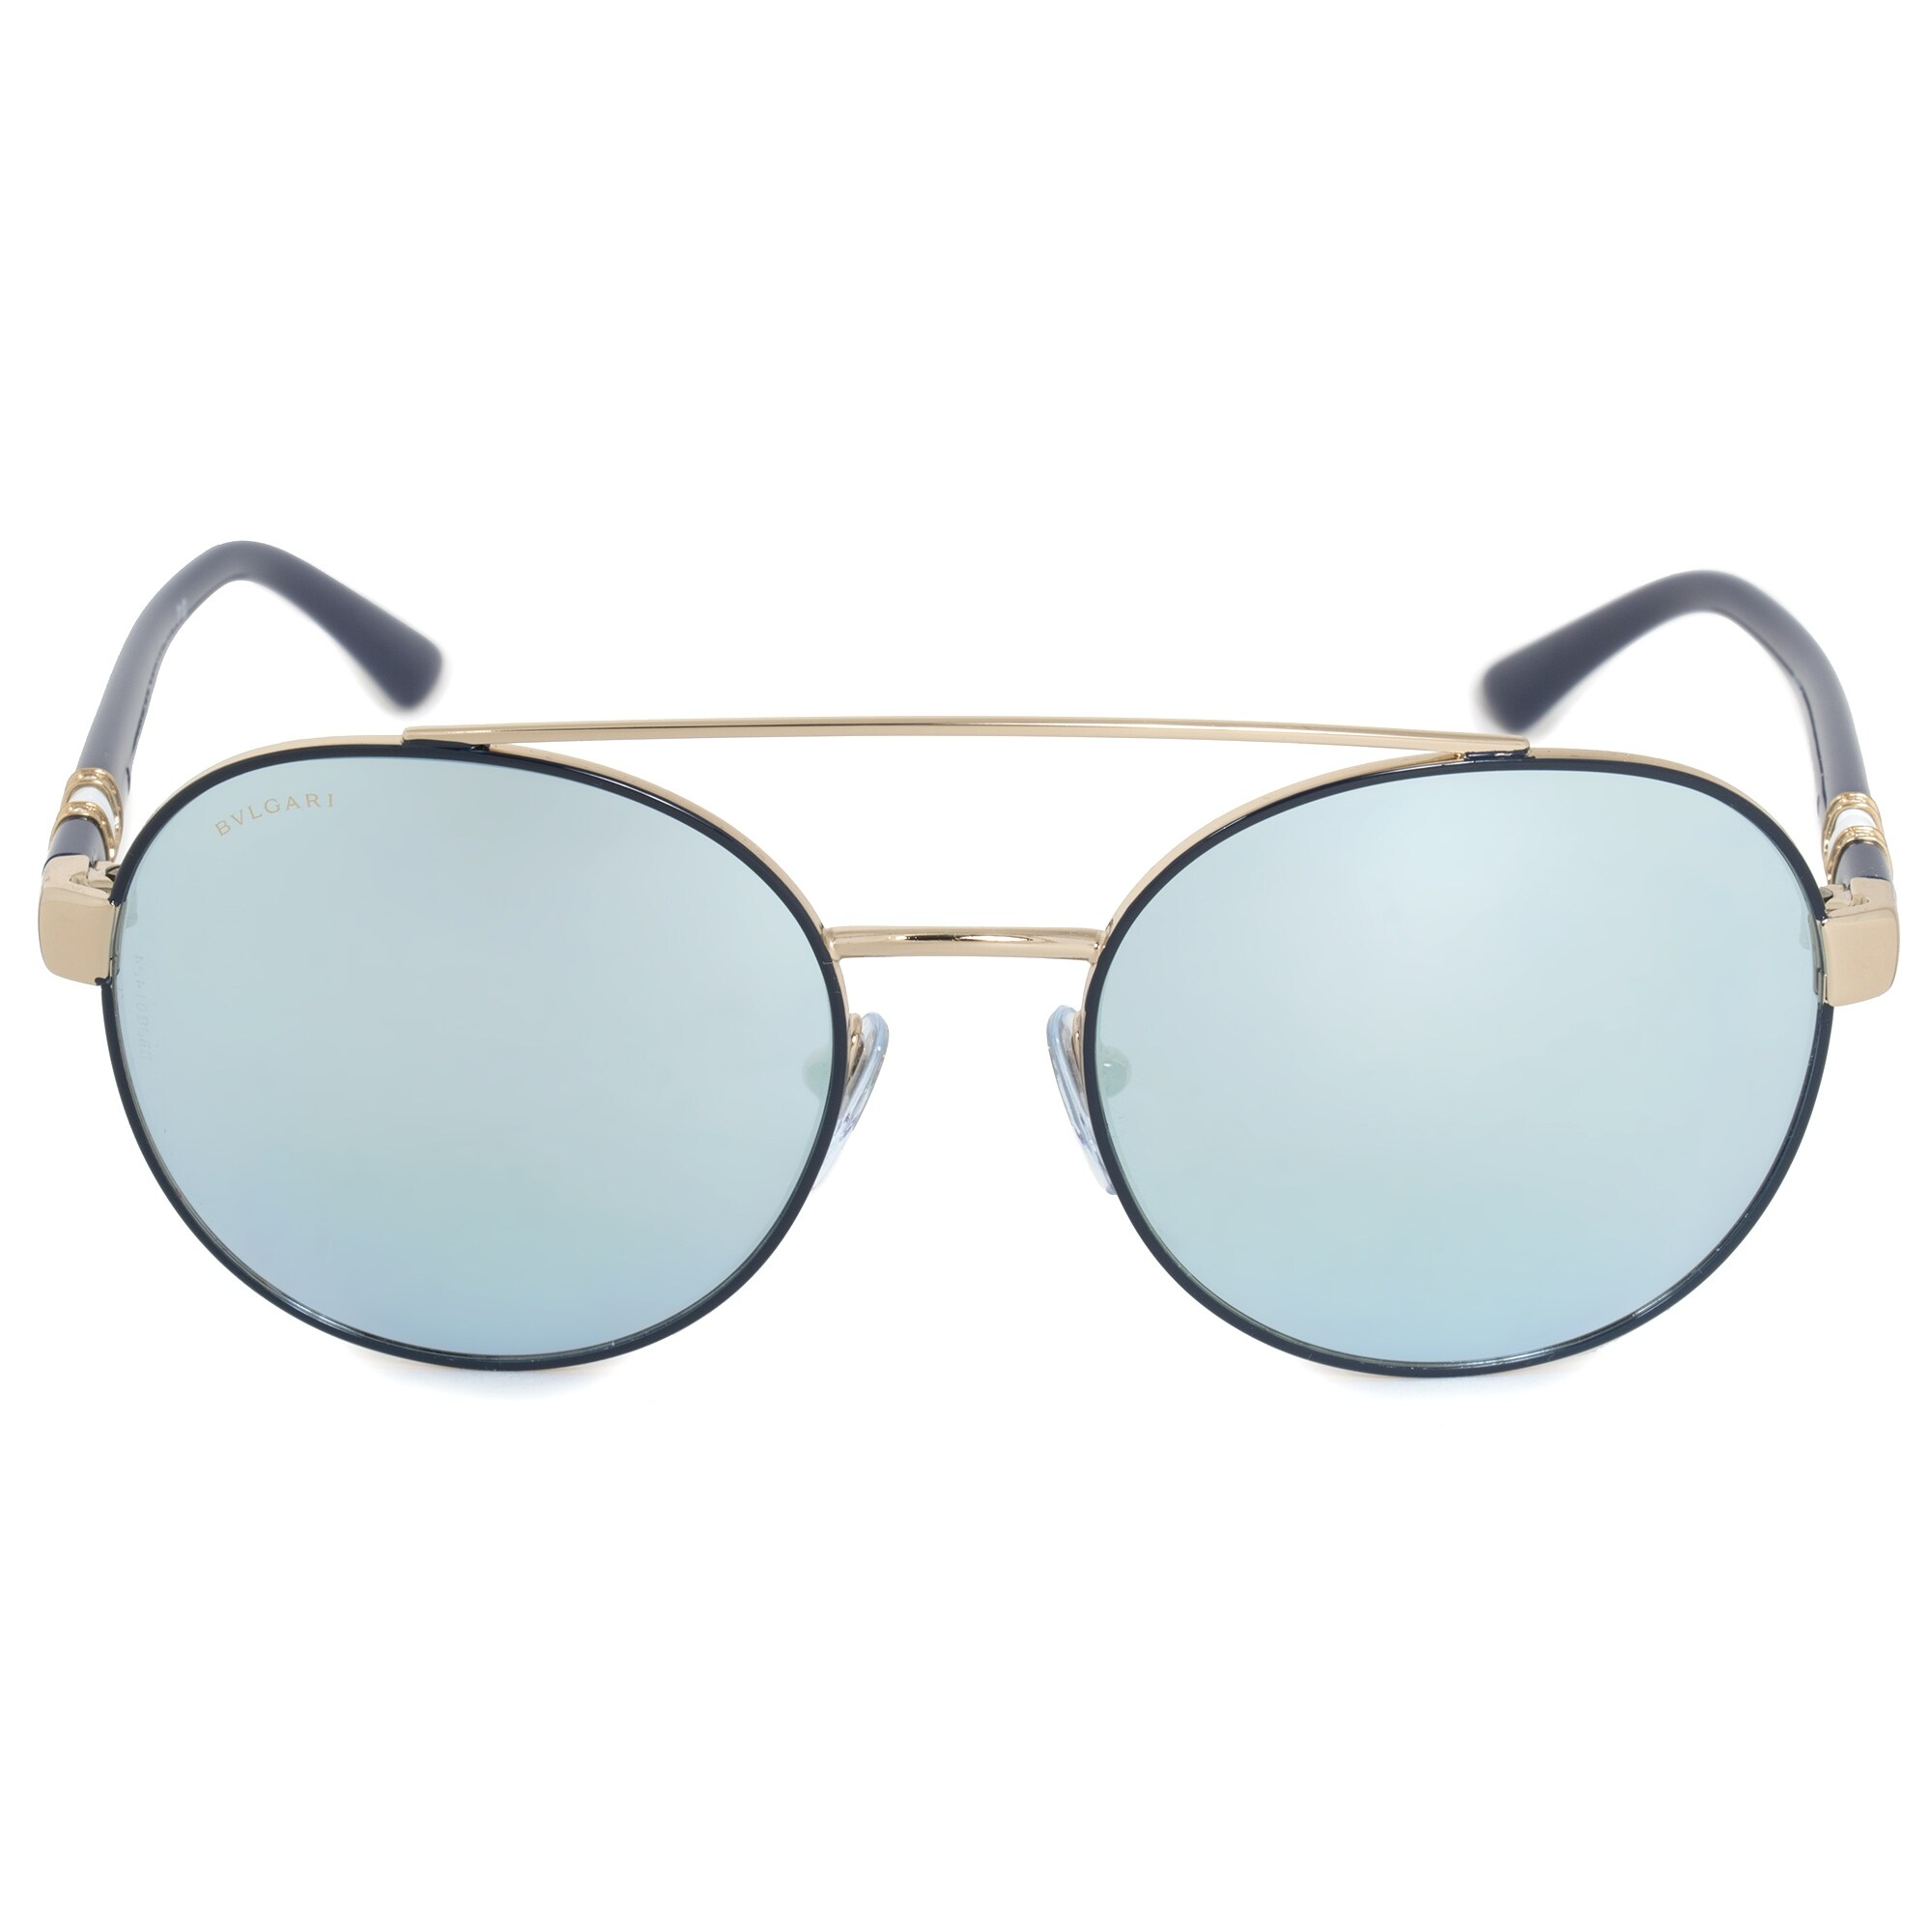 Find Bvlgari At Deals Sunglasses Women's Shopping Great ExHxapFrq